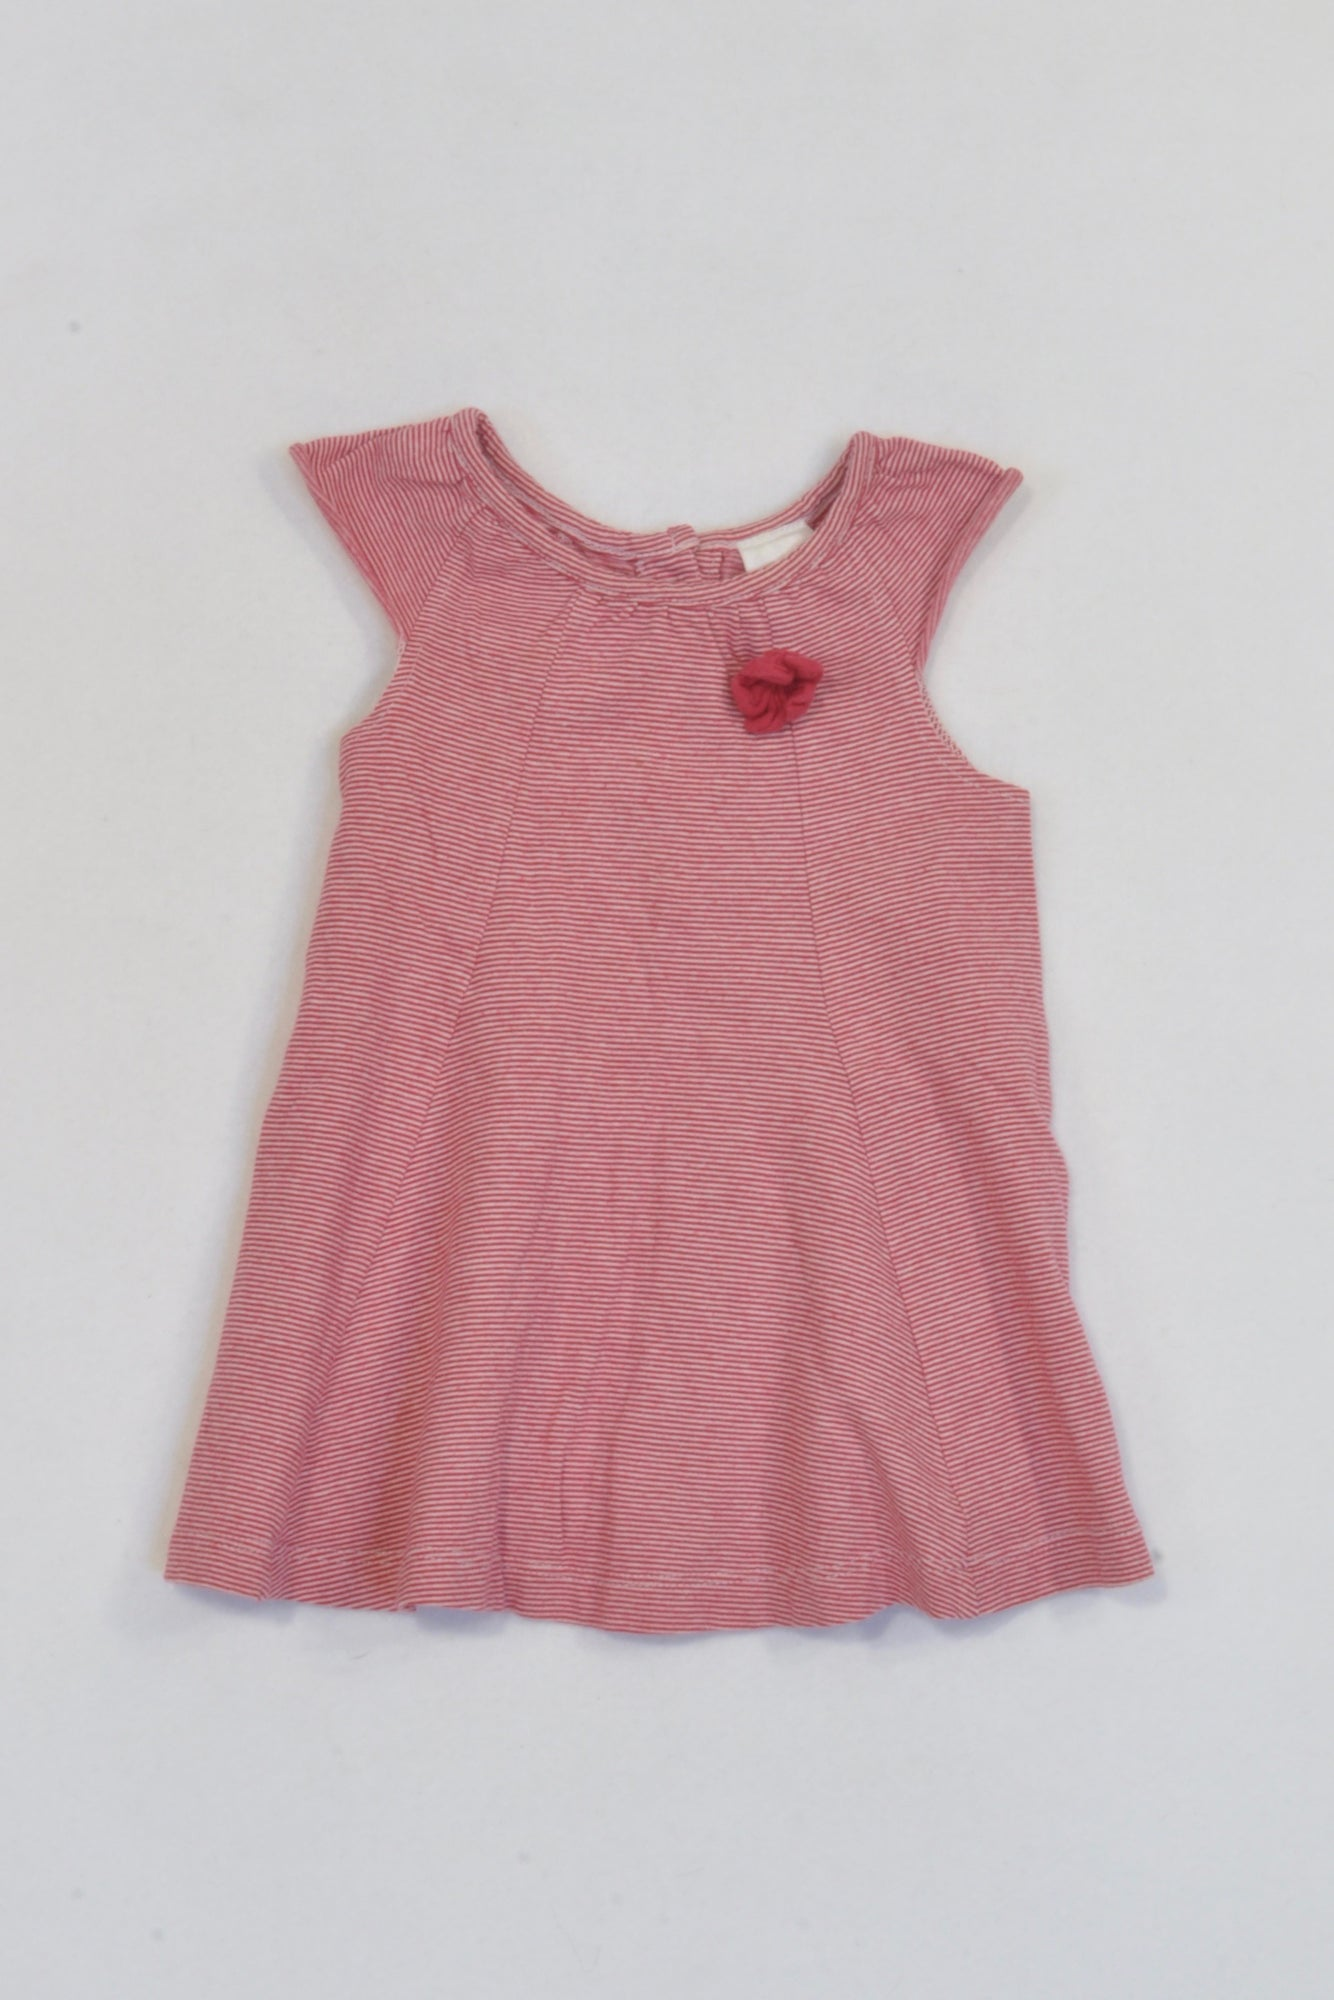 c5856b803750 Target Red   White Thin Striped Dress Girls 3-6 months – Once More